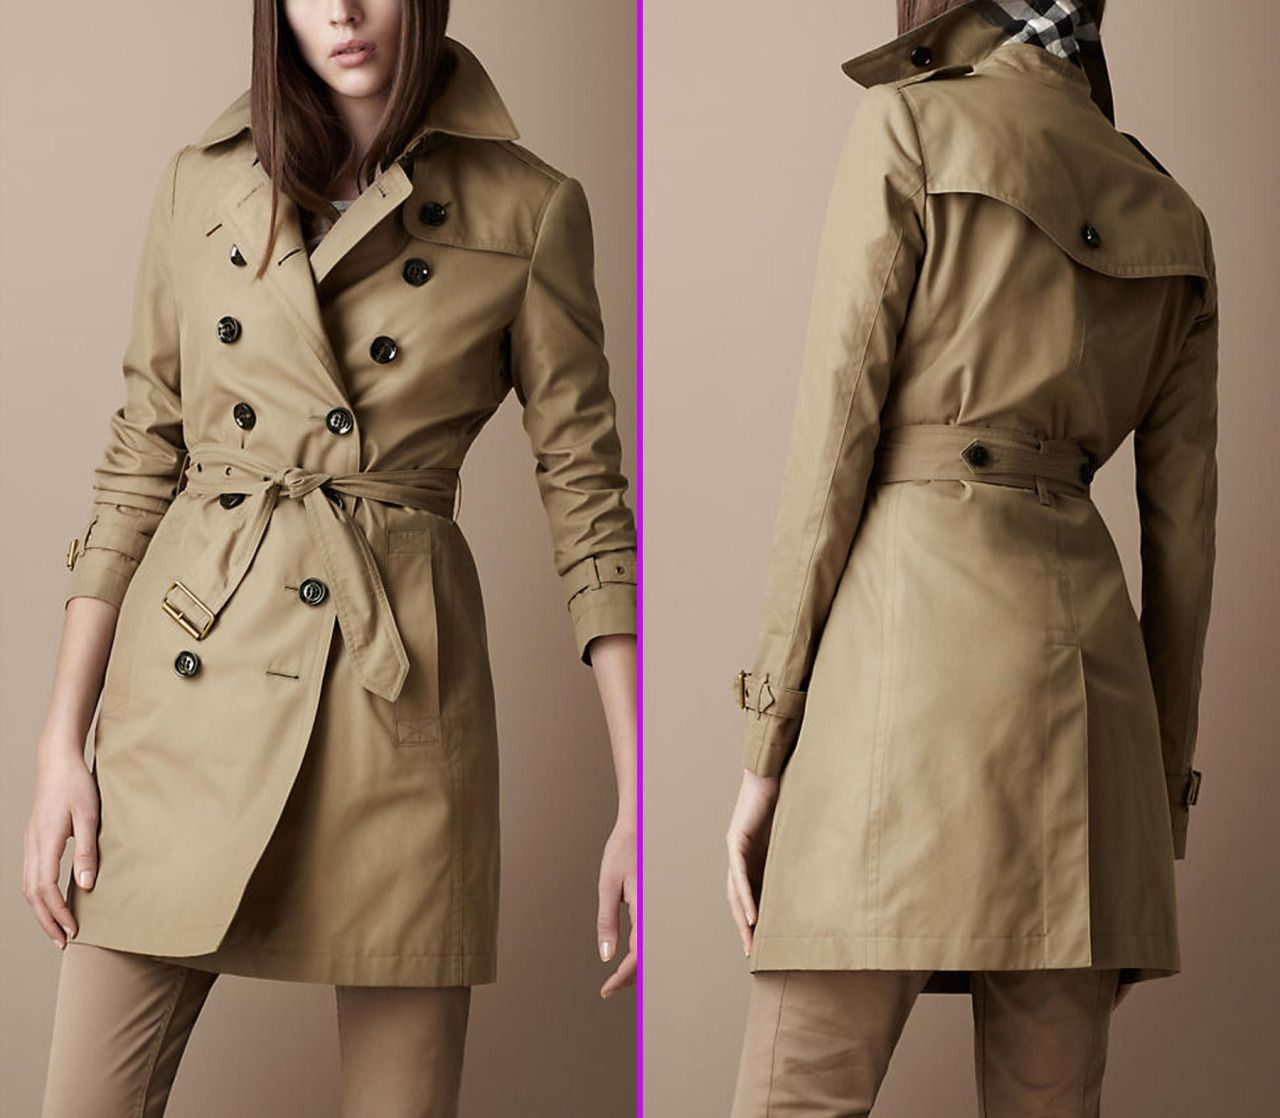 e93ec3a75ff26 Winter Collection Fashionable jackets and Coats... - Online Shopping in  Pakistan